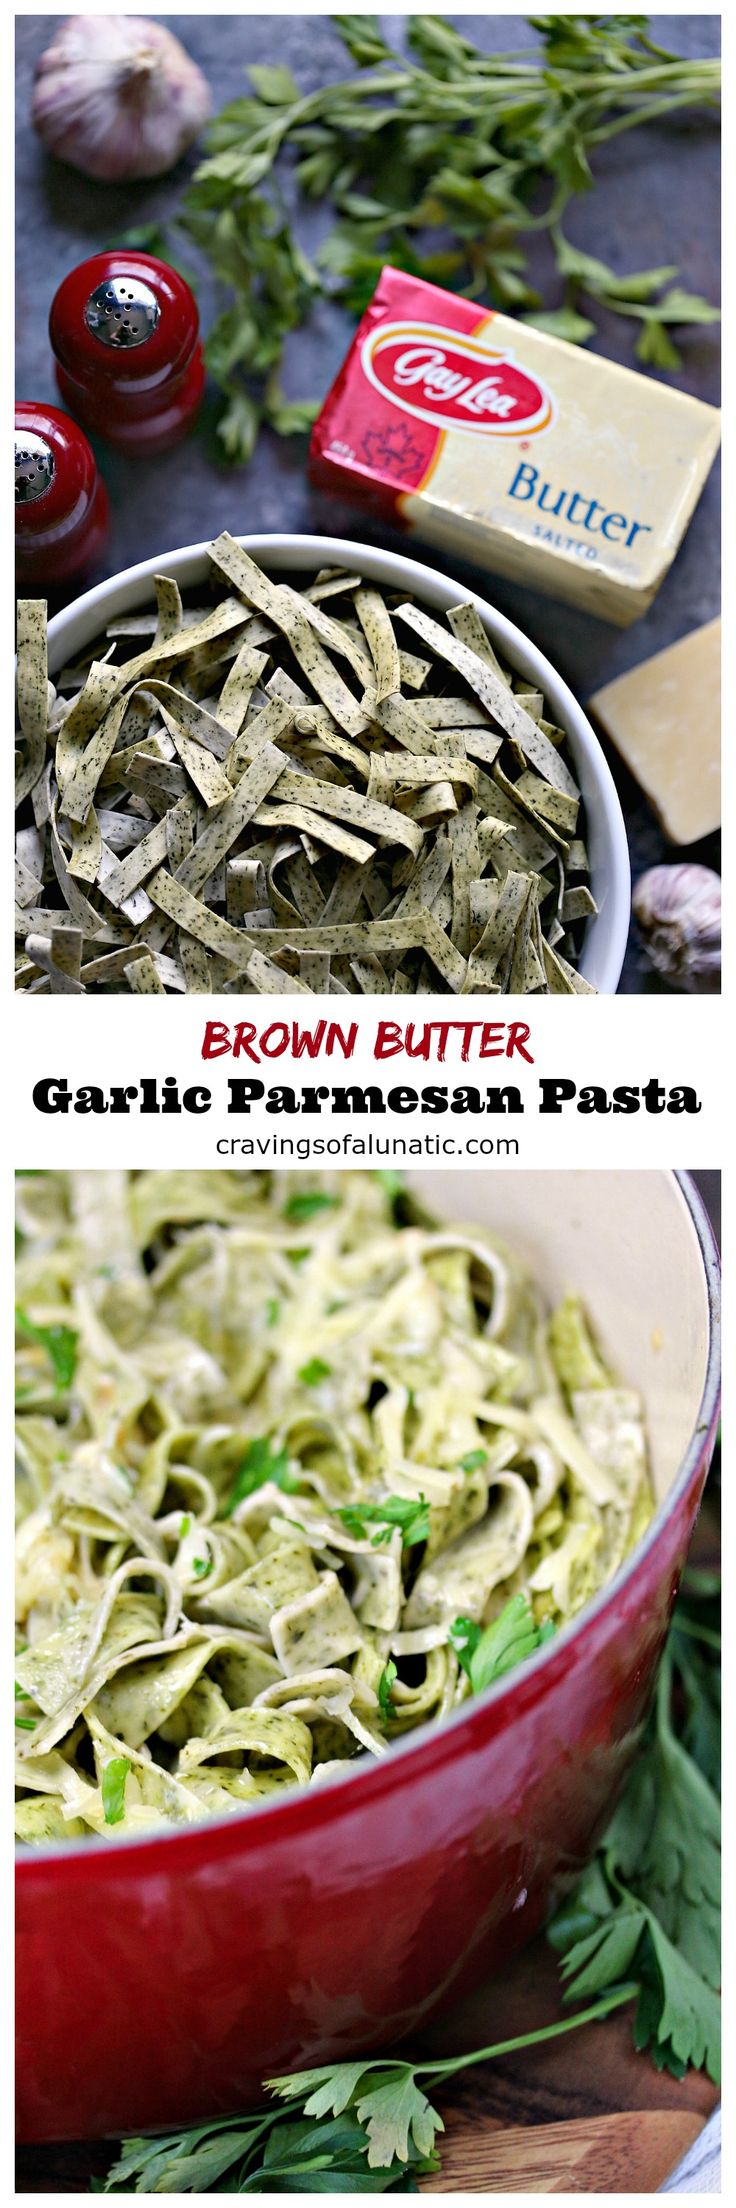 Brown Butter Garlic Parmesan Pasta from cravingsofalunatic.com- This recipe is quick and easy to make. The flavour from the brown butter blends perfectly with the garlic in this pasta. Toss fresh parmesan to your heart's content. #sponsored #bornonthefarm